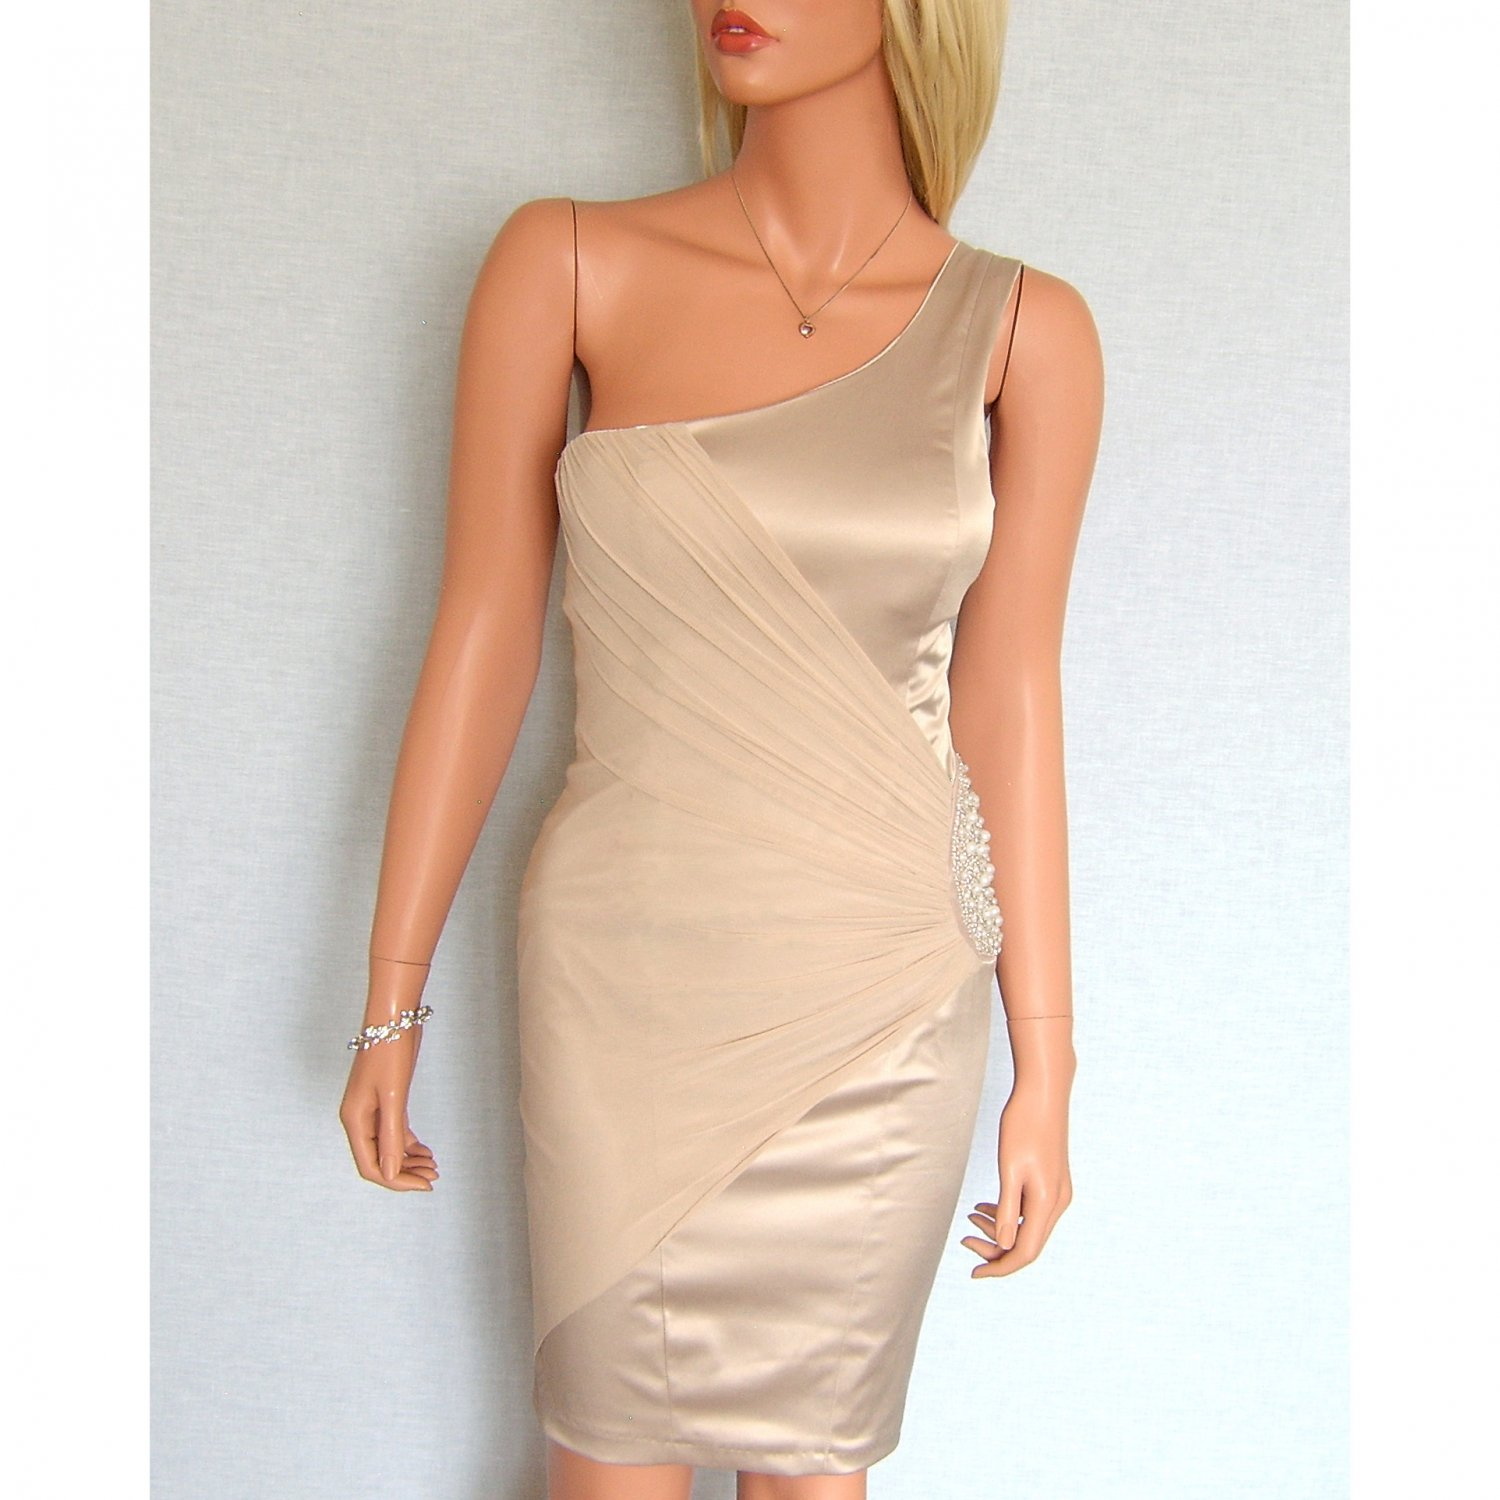 ELISE RYAN TOPSHOP NUDE PEARL BEADED EVENING BODYCON MINI COCKTAIL CLUB PARTY PROM DRESS UK 12, US 8